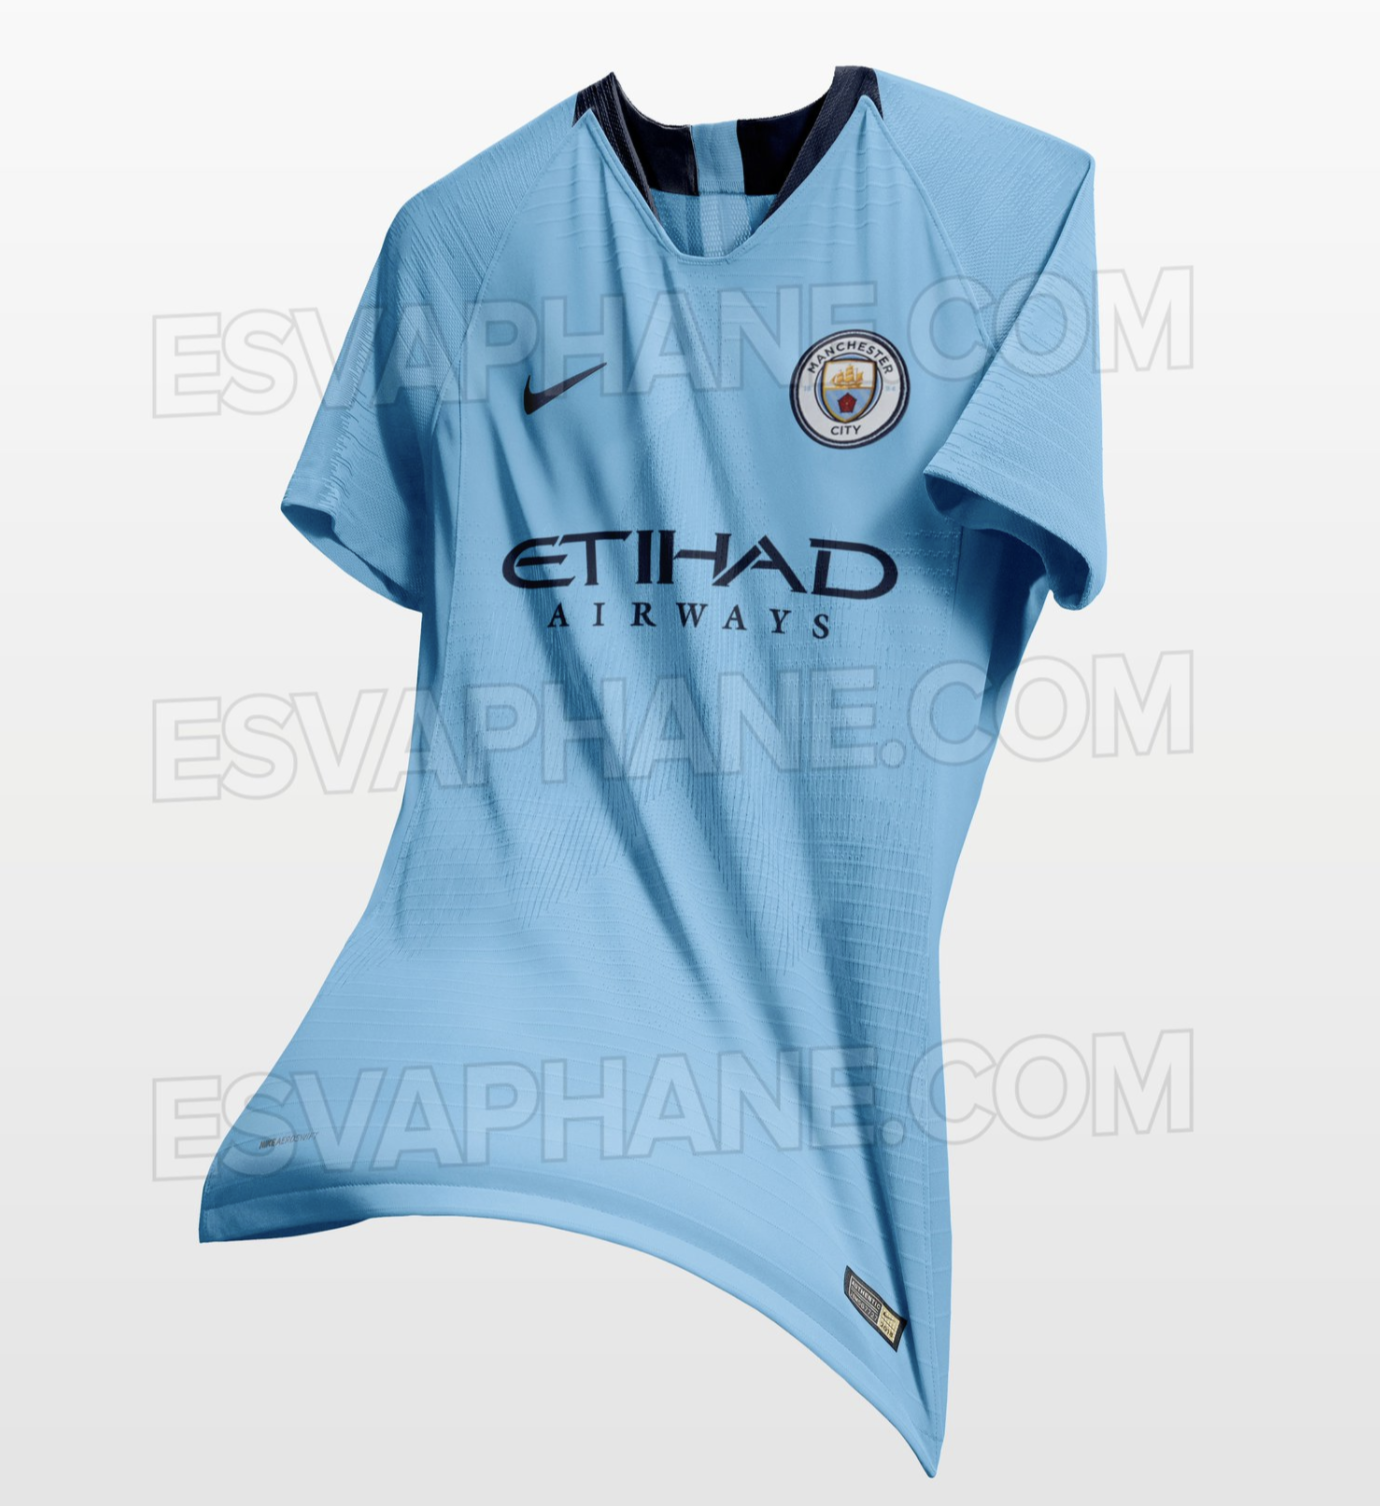 Images of manchester citys 201819 home shirt have been leaked the nike swoosh and main sponsor are also in navy with the shirt seemingly using the new vapor template maxwellsz